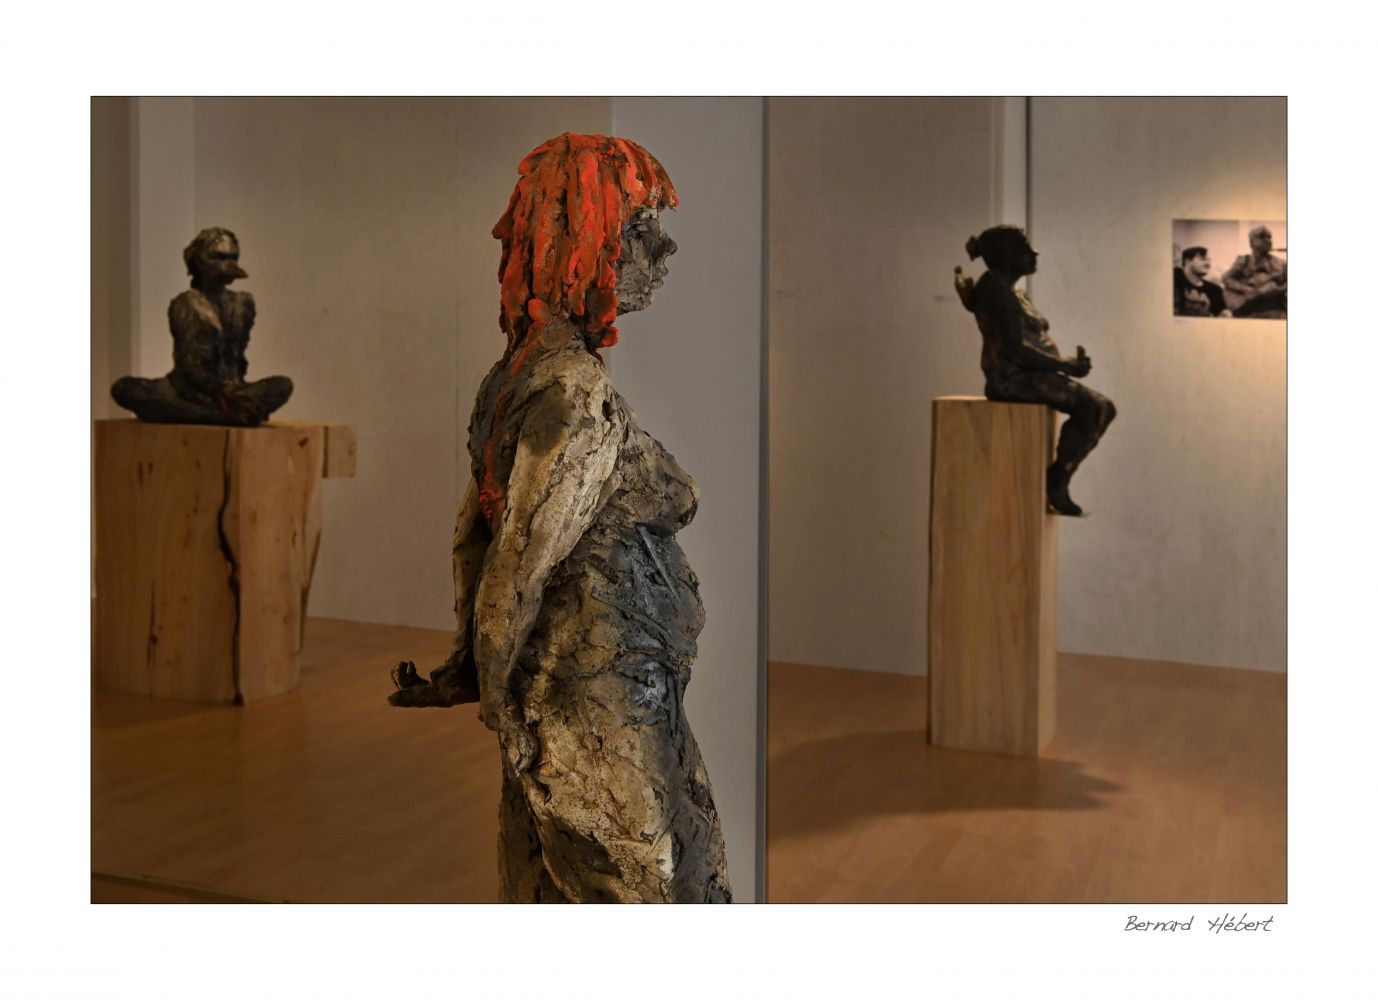 Sculpture - Cécile Raynal - Scarlet (with Lindsay)